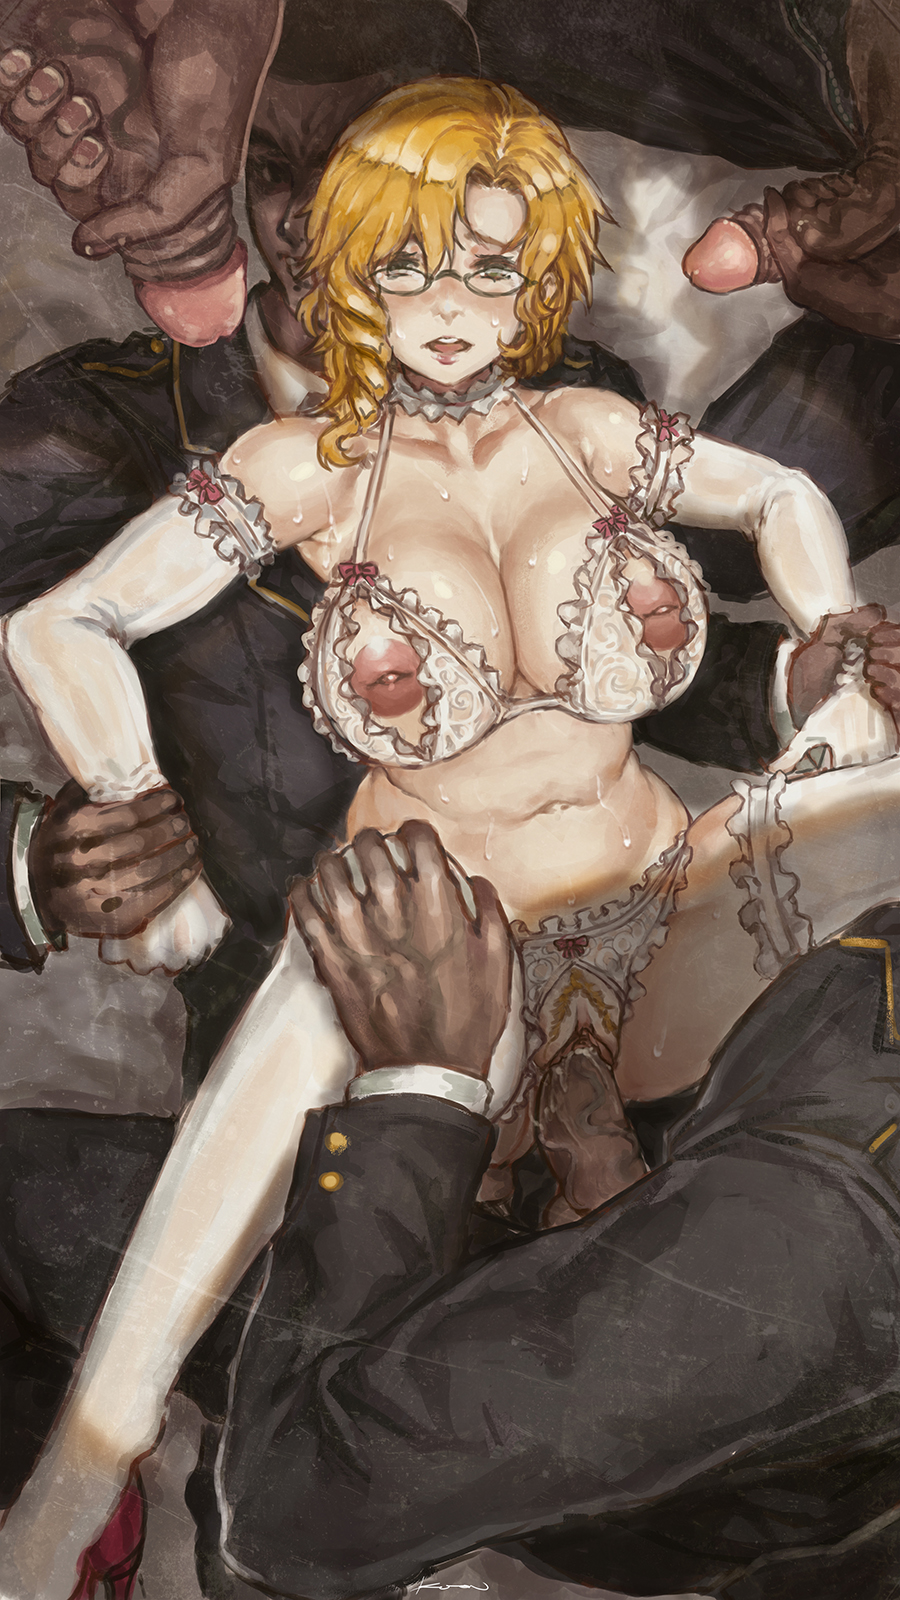 james glynda goodwitch ironwood and Zone-tan and lemmy